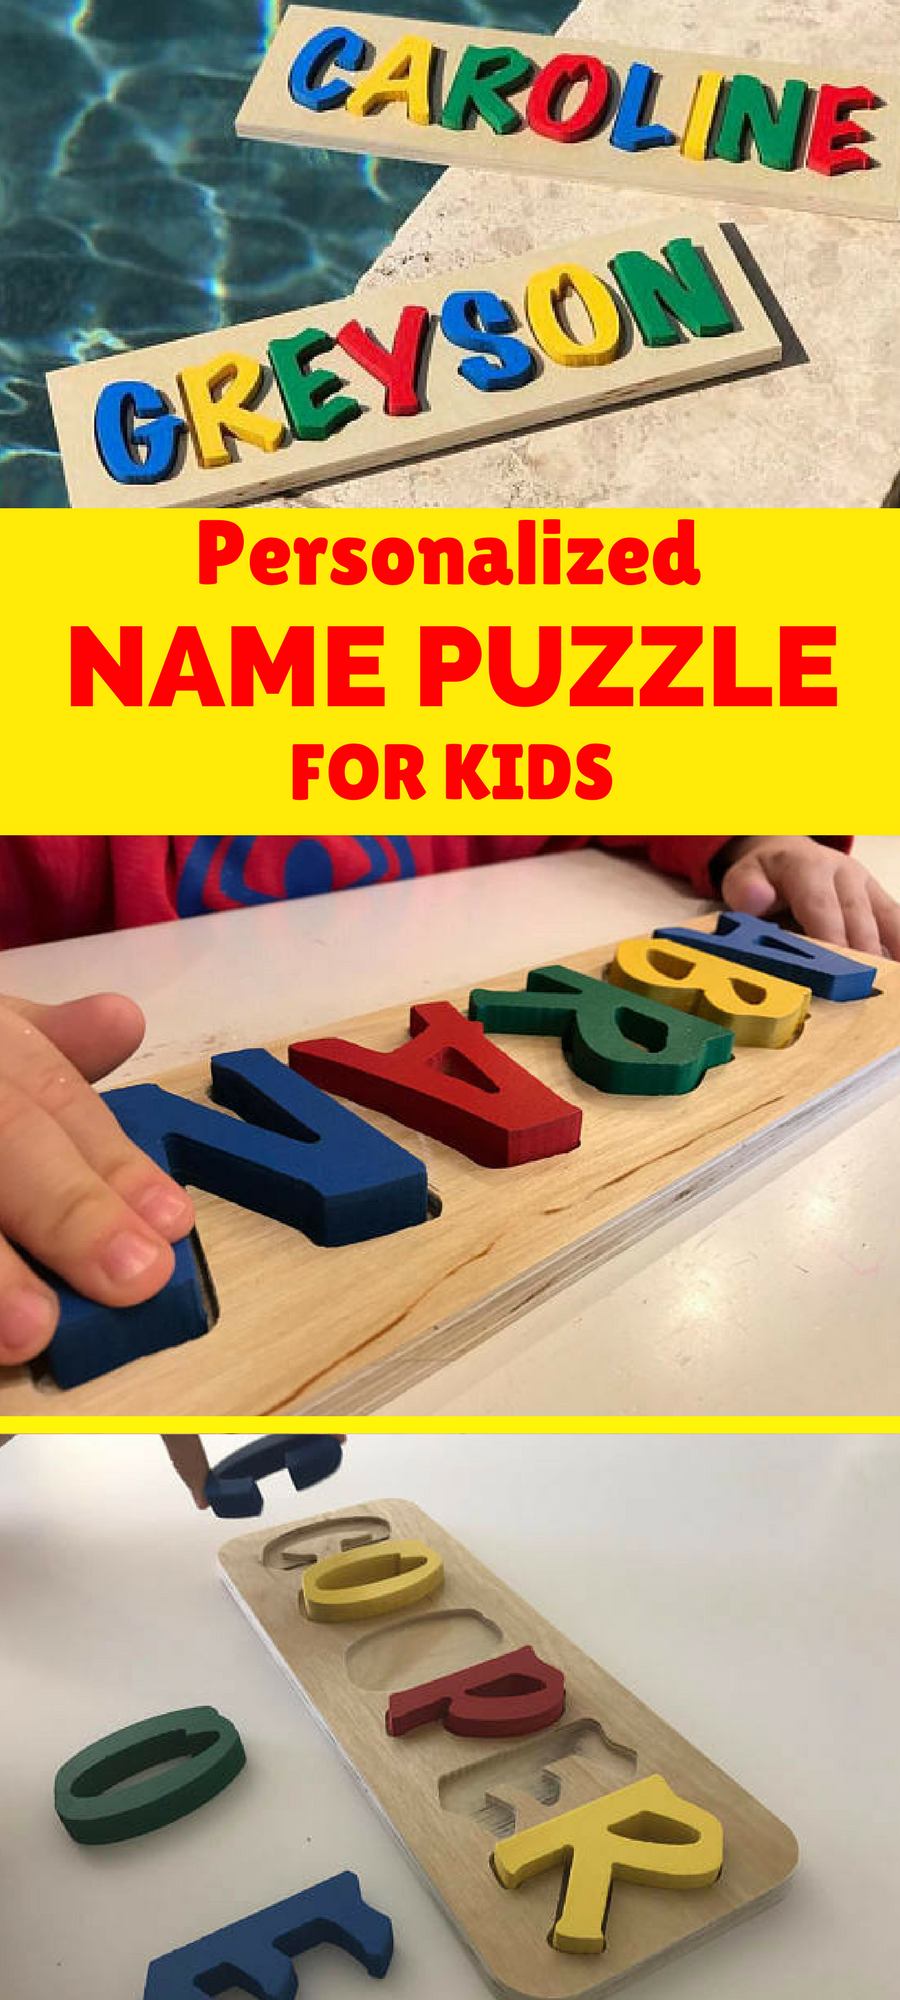 Get Them This Fun Name Puzzle Personalized With Their Own Ad Kid Activities Puzzles Toddler Gifts